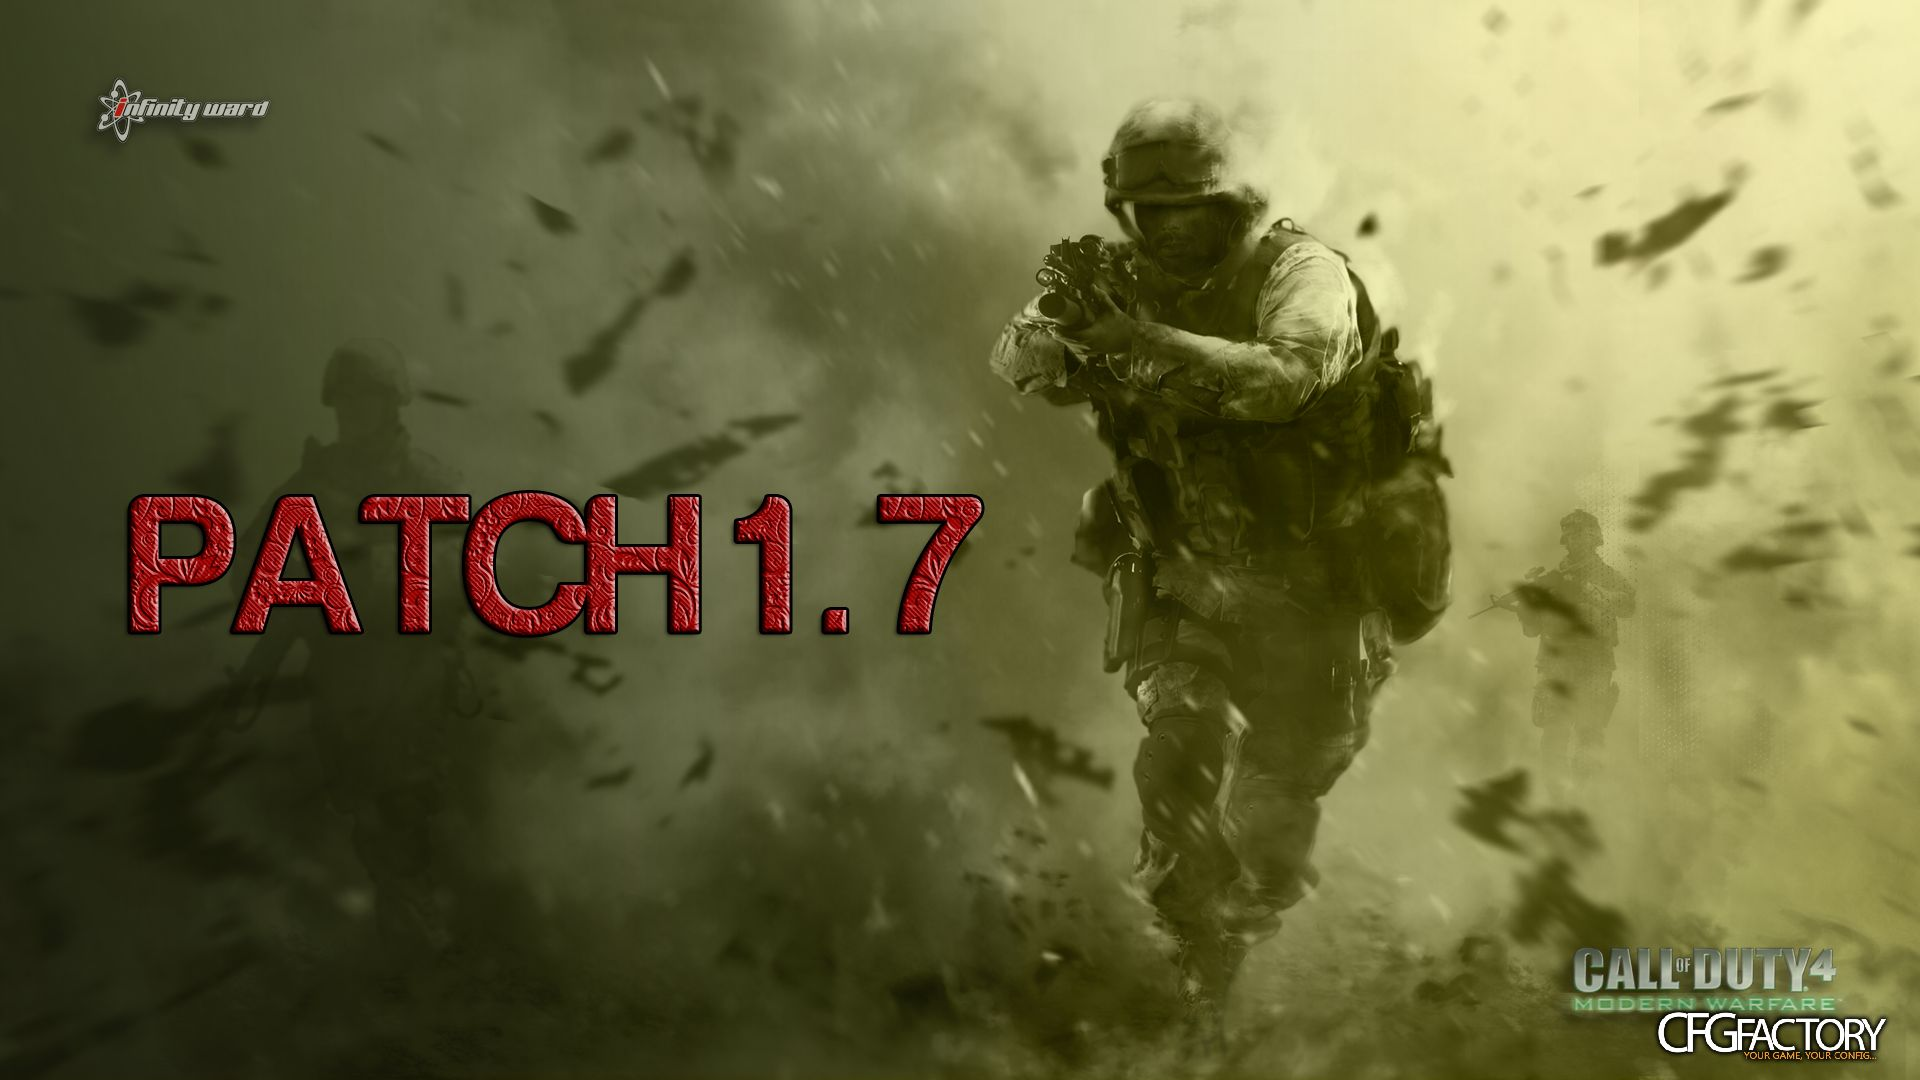 Call of duty 4: modern warfare patch v1. 6 exe file mod db.